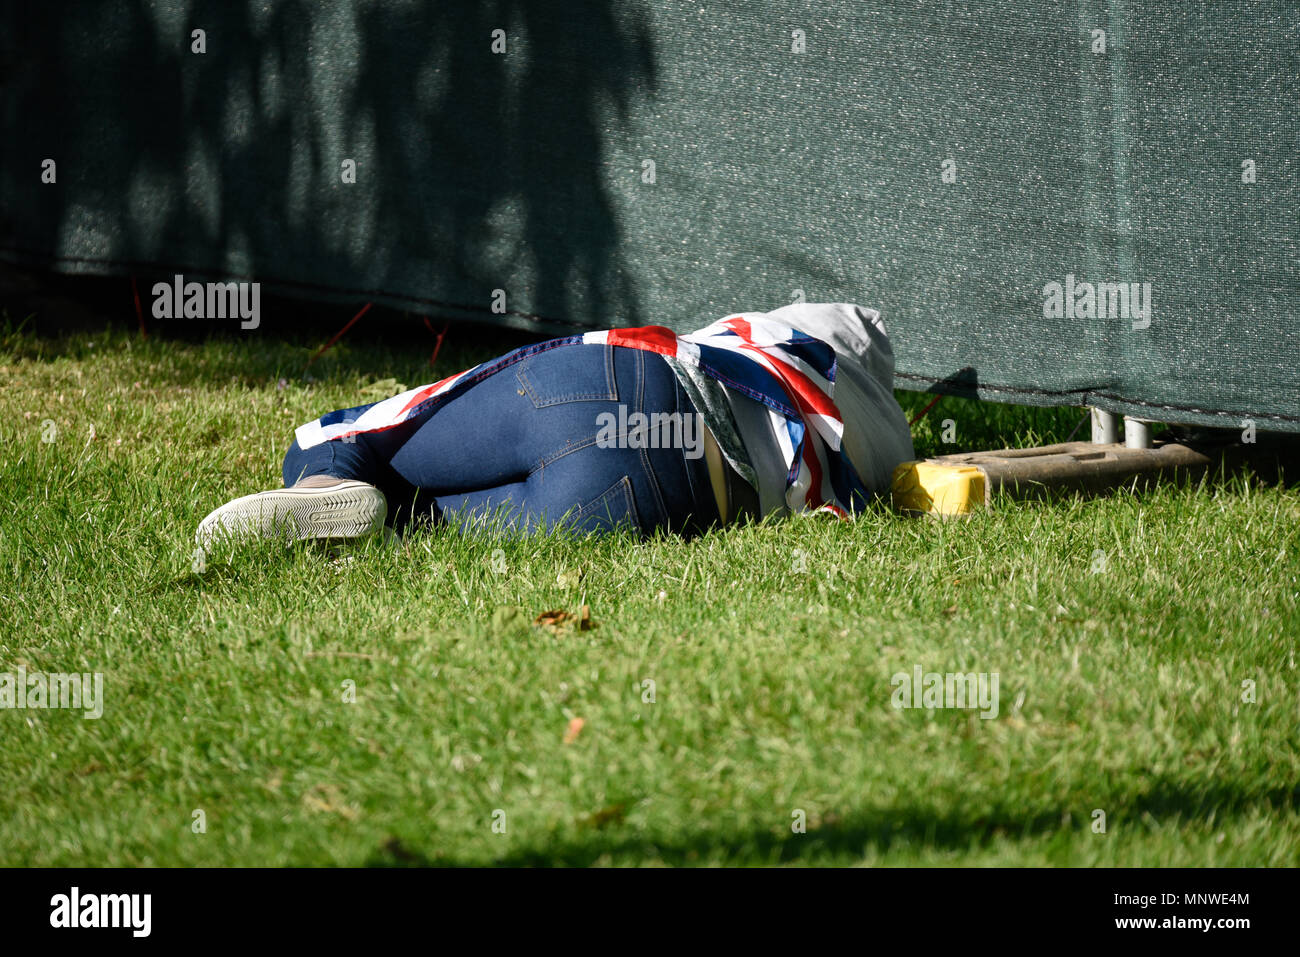 The Royal Wedding of Prince Harry and Meghan Markle at Windsor. A member of the public relaxes after the long wait in Windsor Great Park by The Long Walk - Stock Image